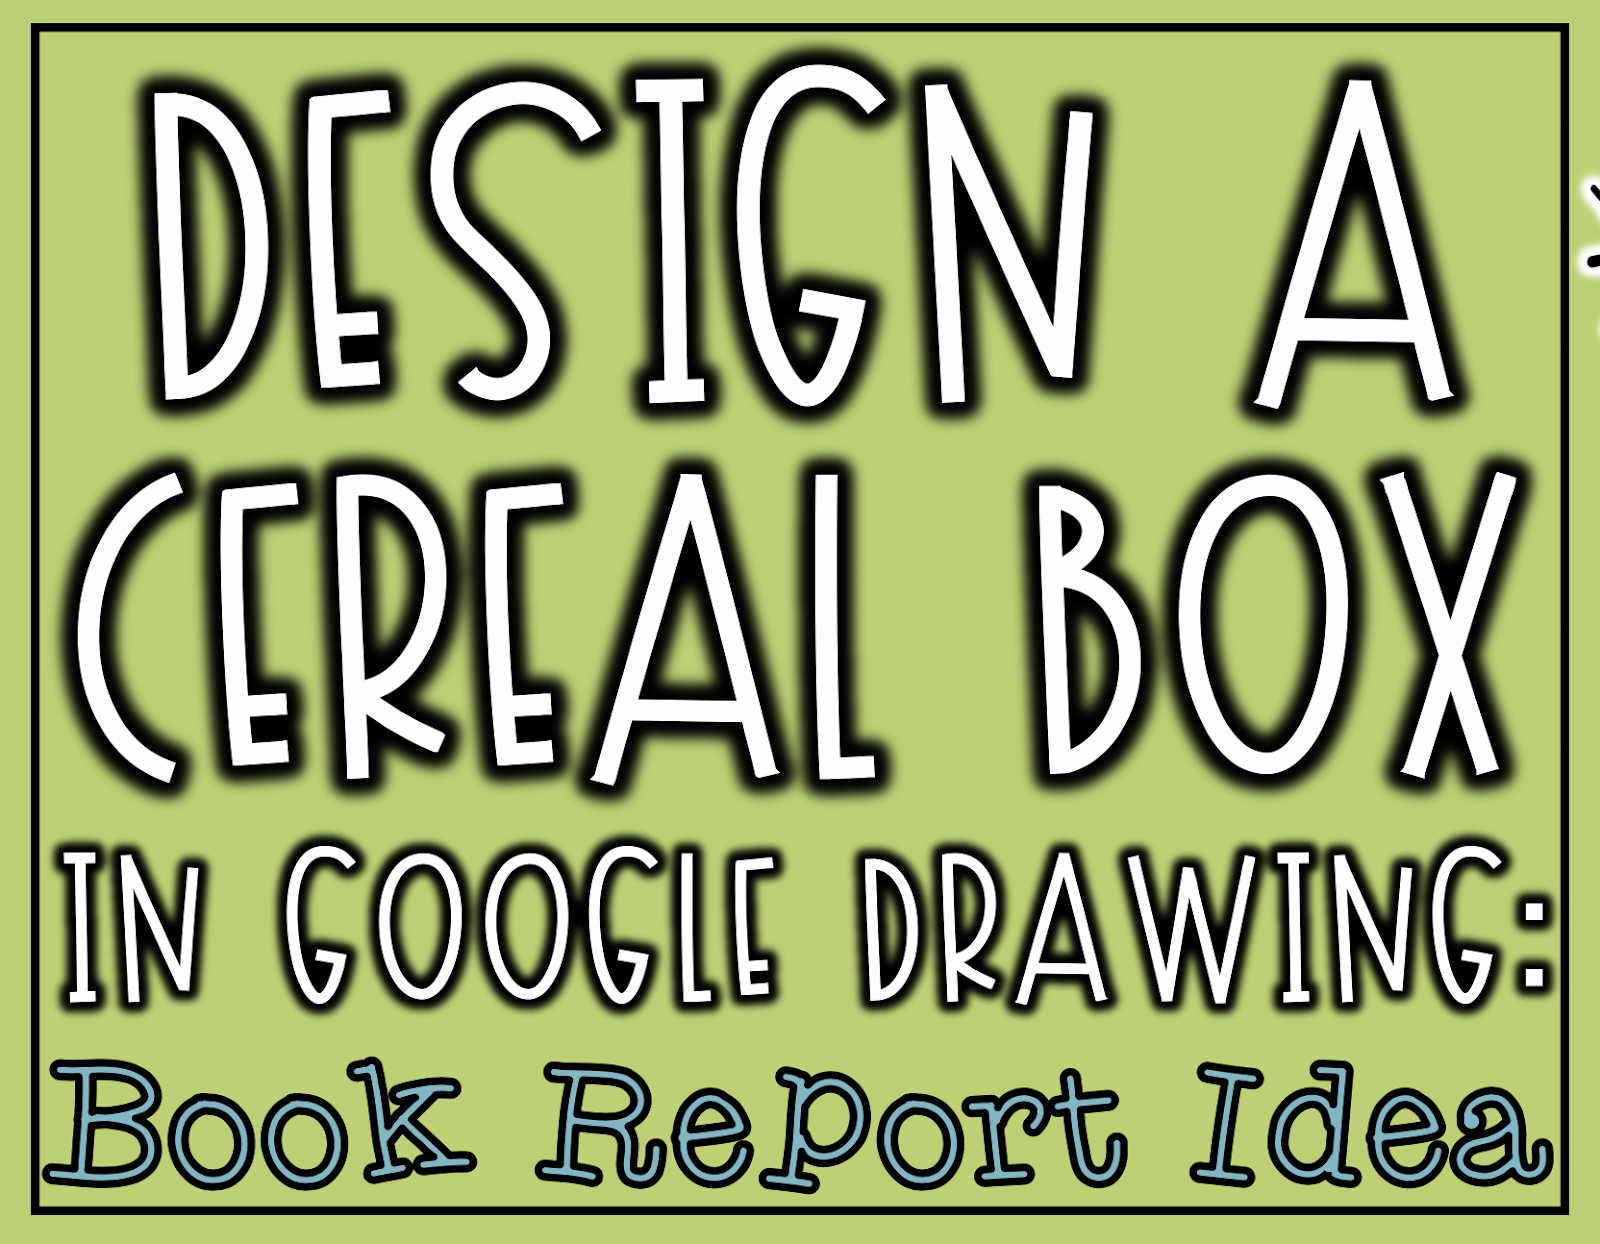 Design A Cereal Box In Google Drawing Book Report Idea The Techie